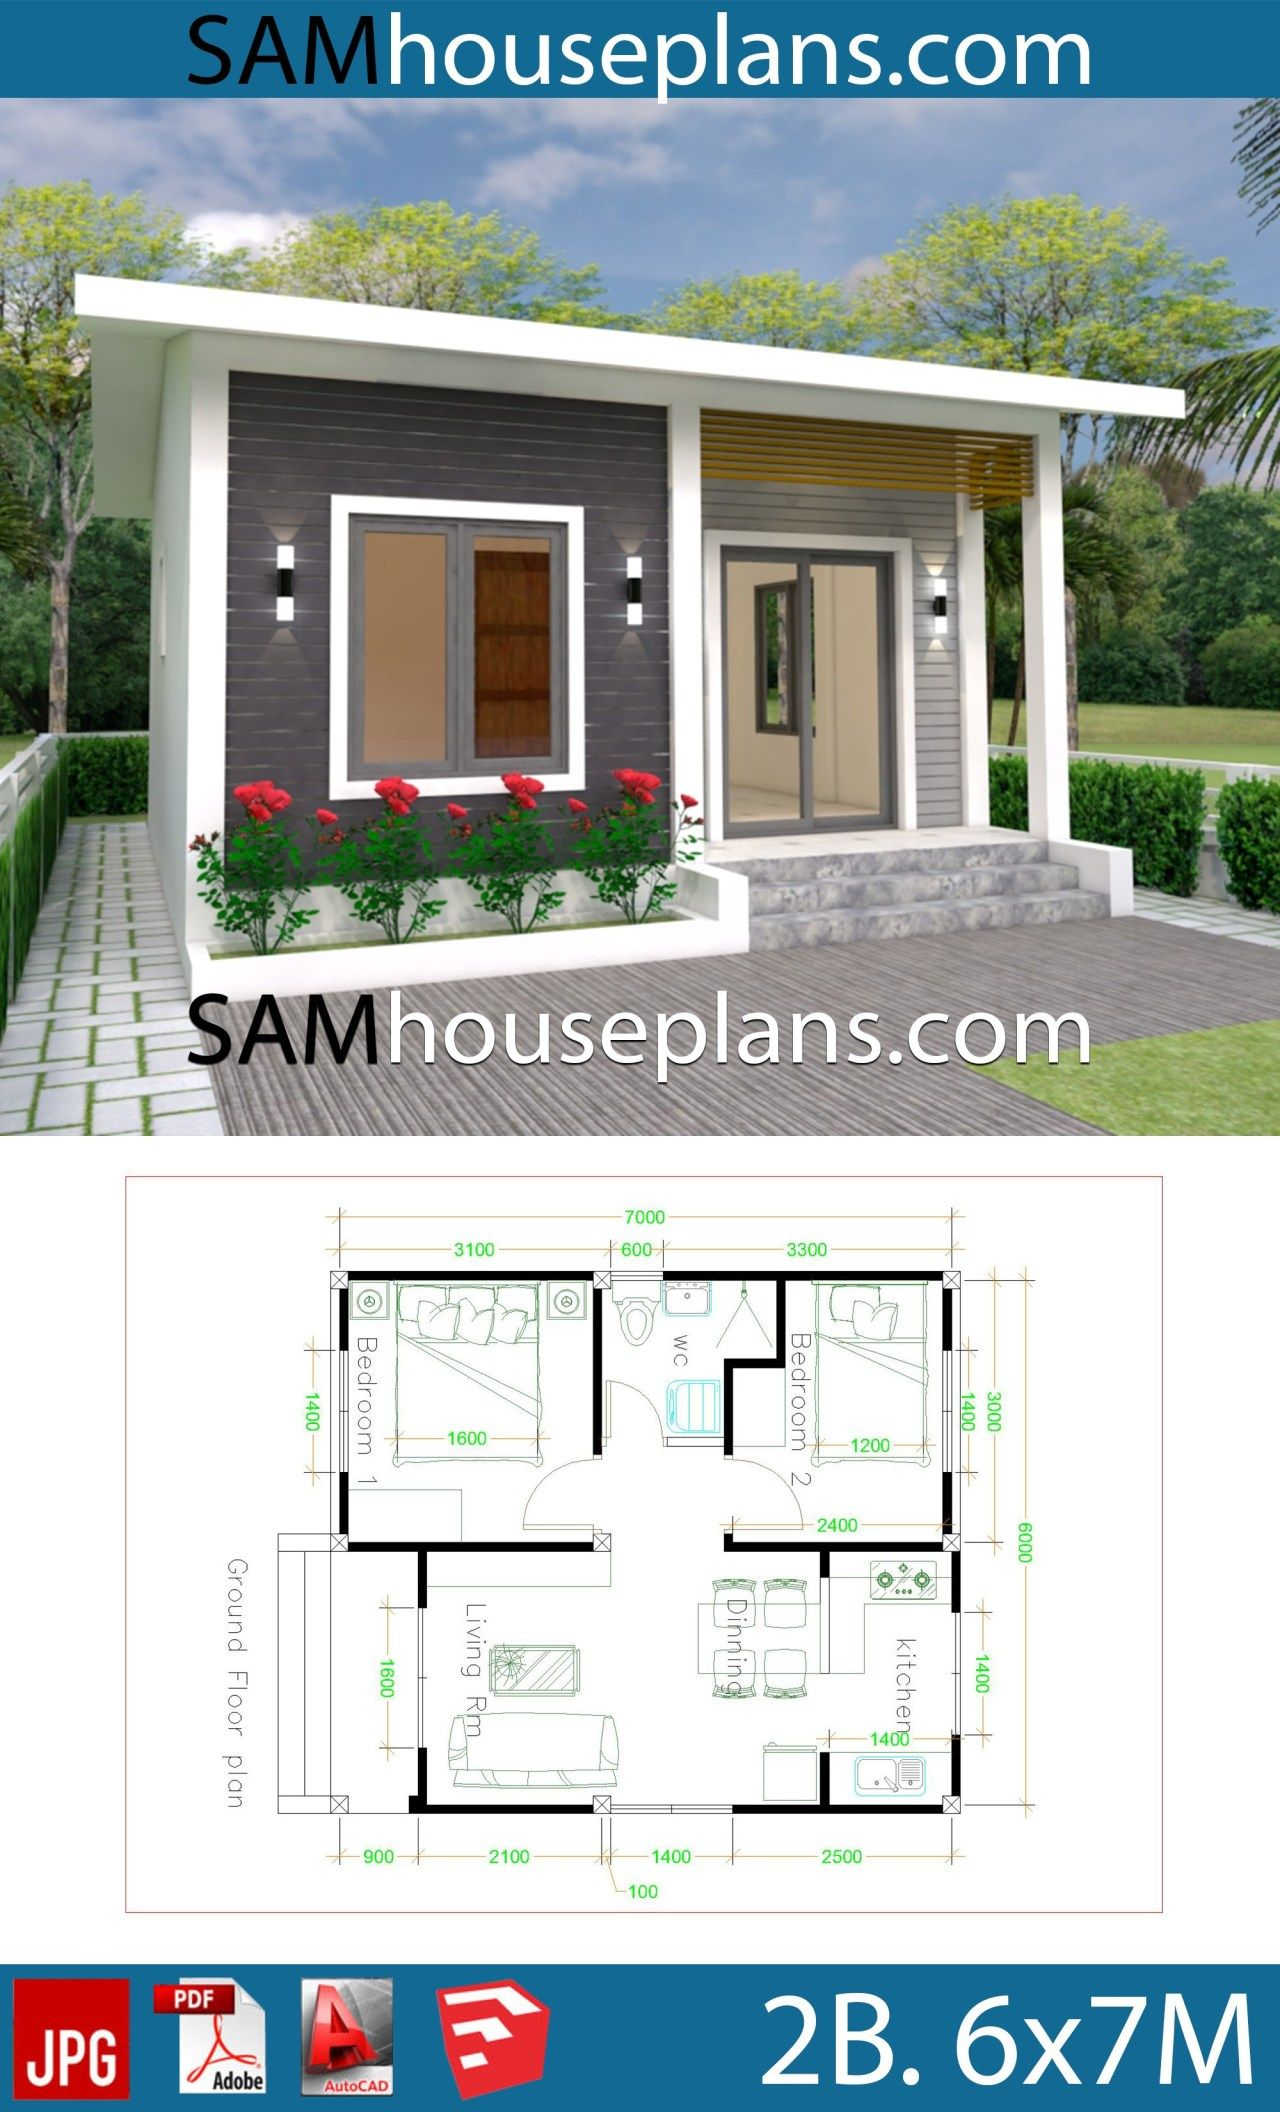 House Plans 6x7m With 2 Bedrooms Sam House Plans Simple House Design House Design Small House Design Plans